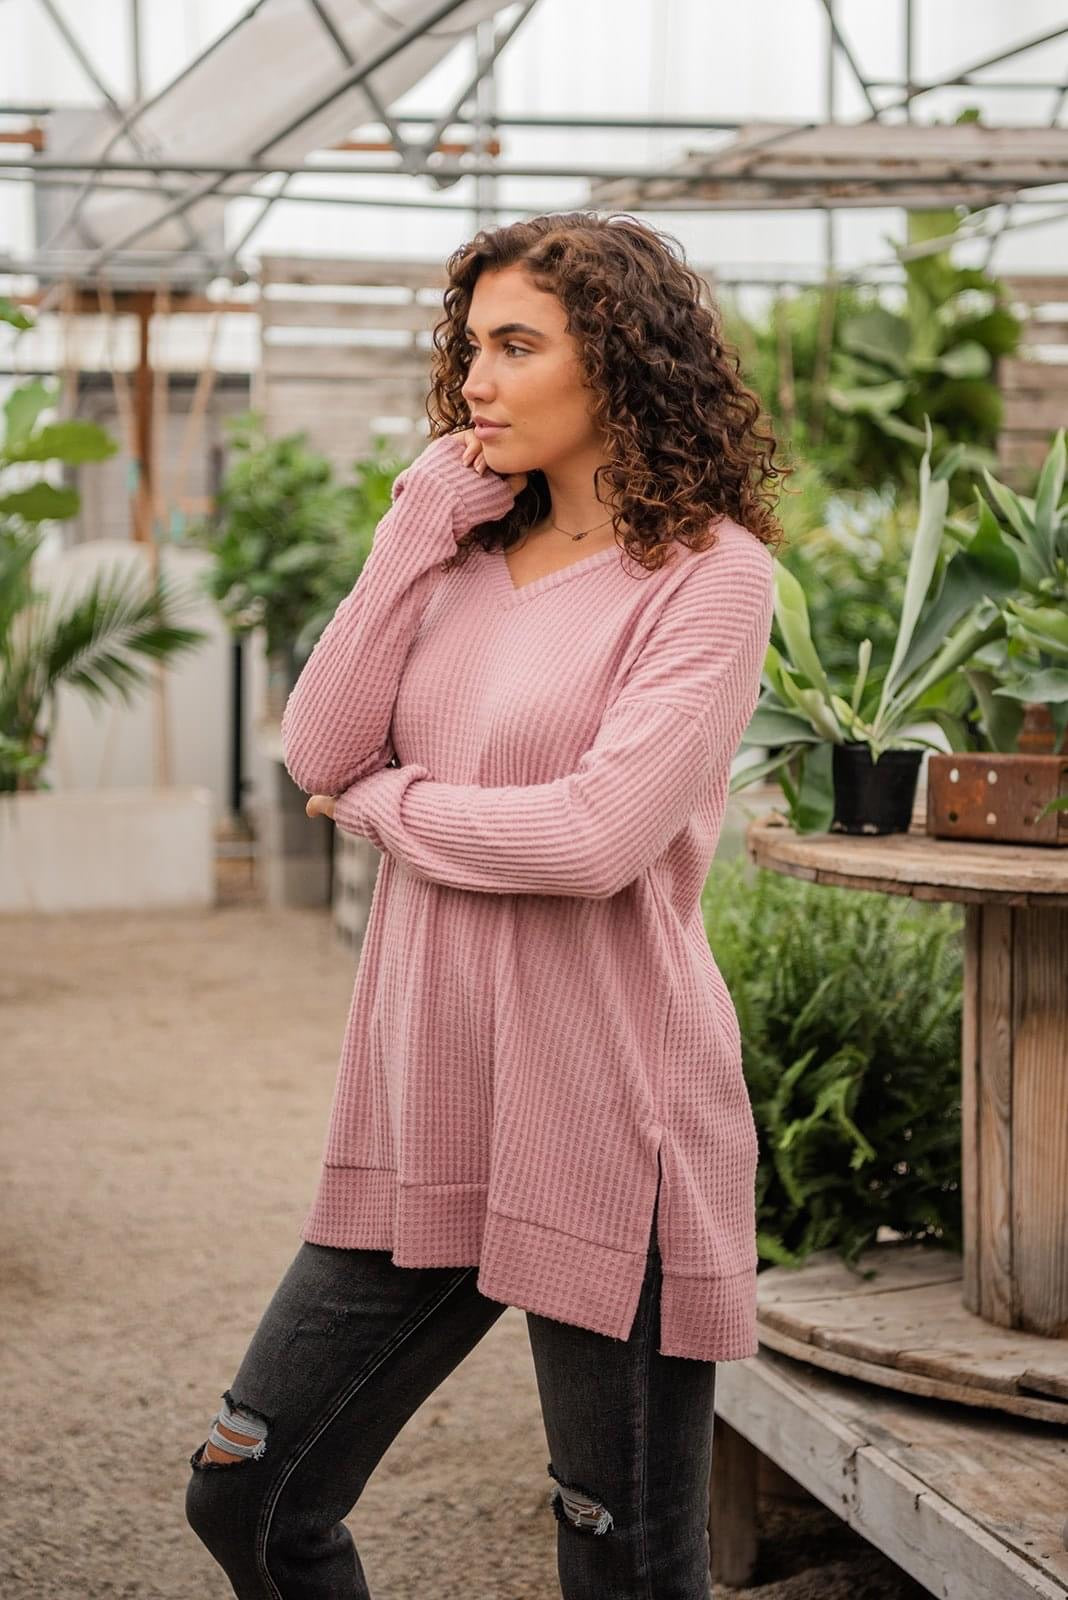 Easy Days Ahead Thermal Knit Sweater | 2 Colors, Clothing - Lola Cerina Boutique